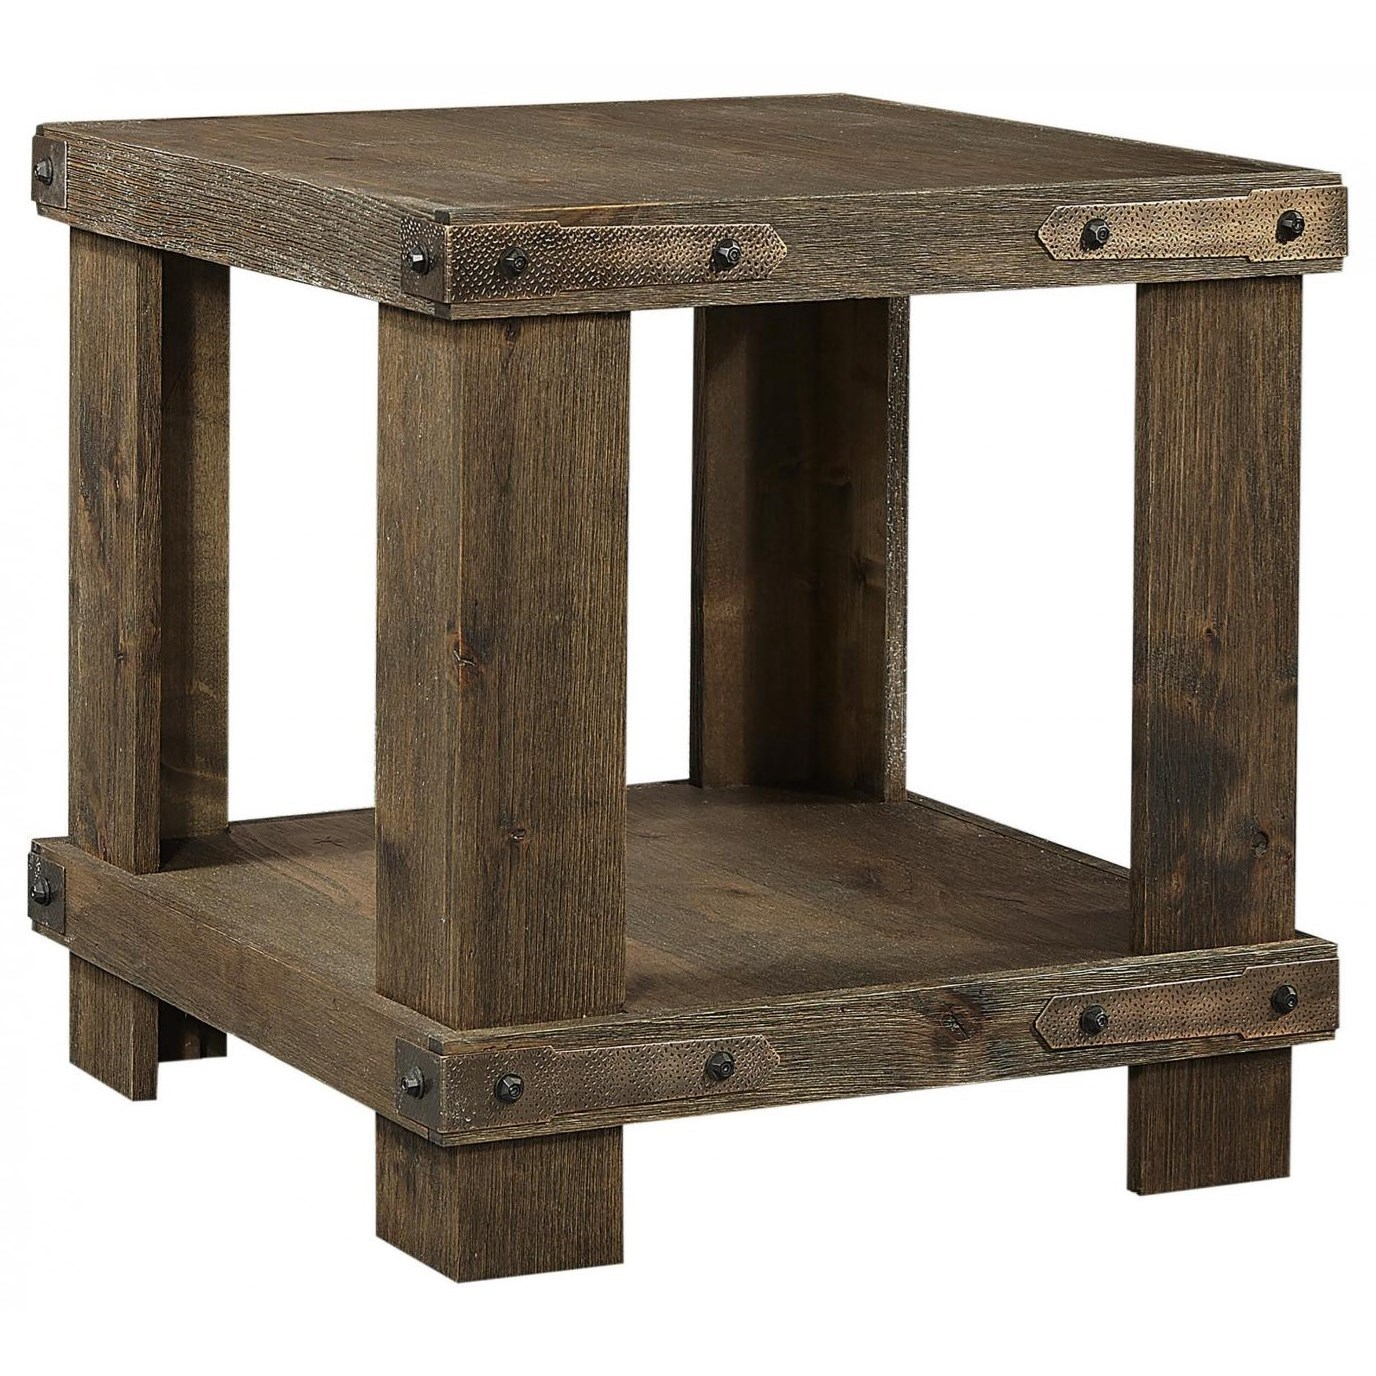 Sawyer End Table by Aspenhome at Walker's Furniture